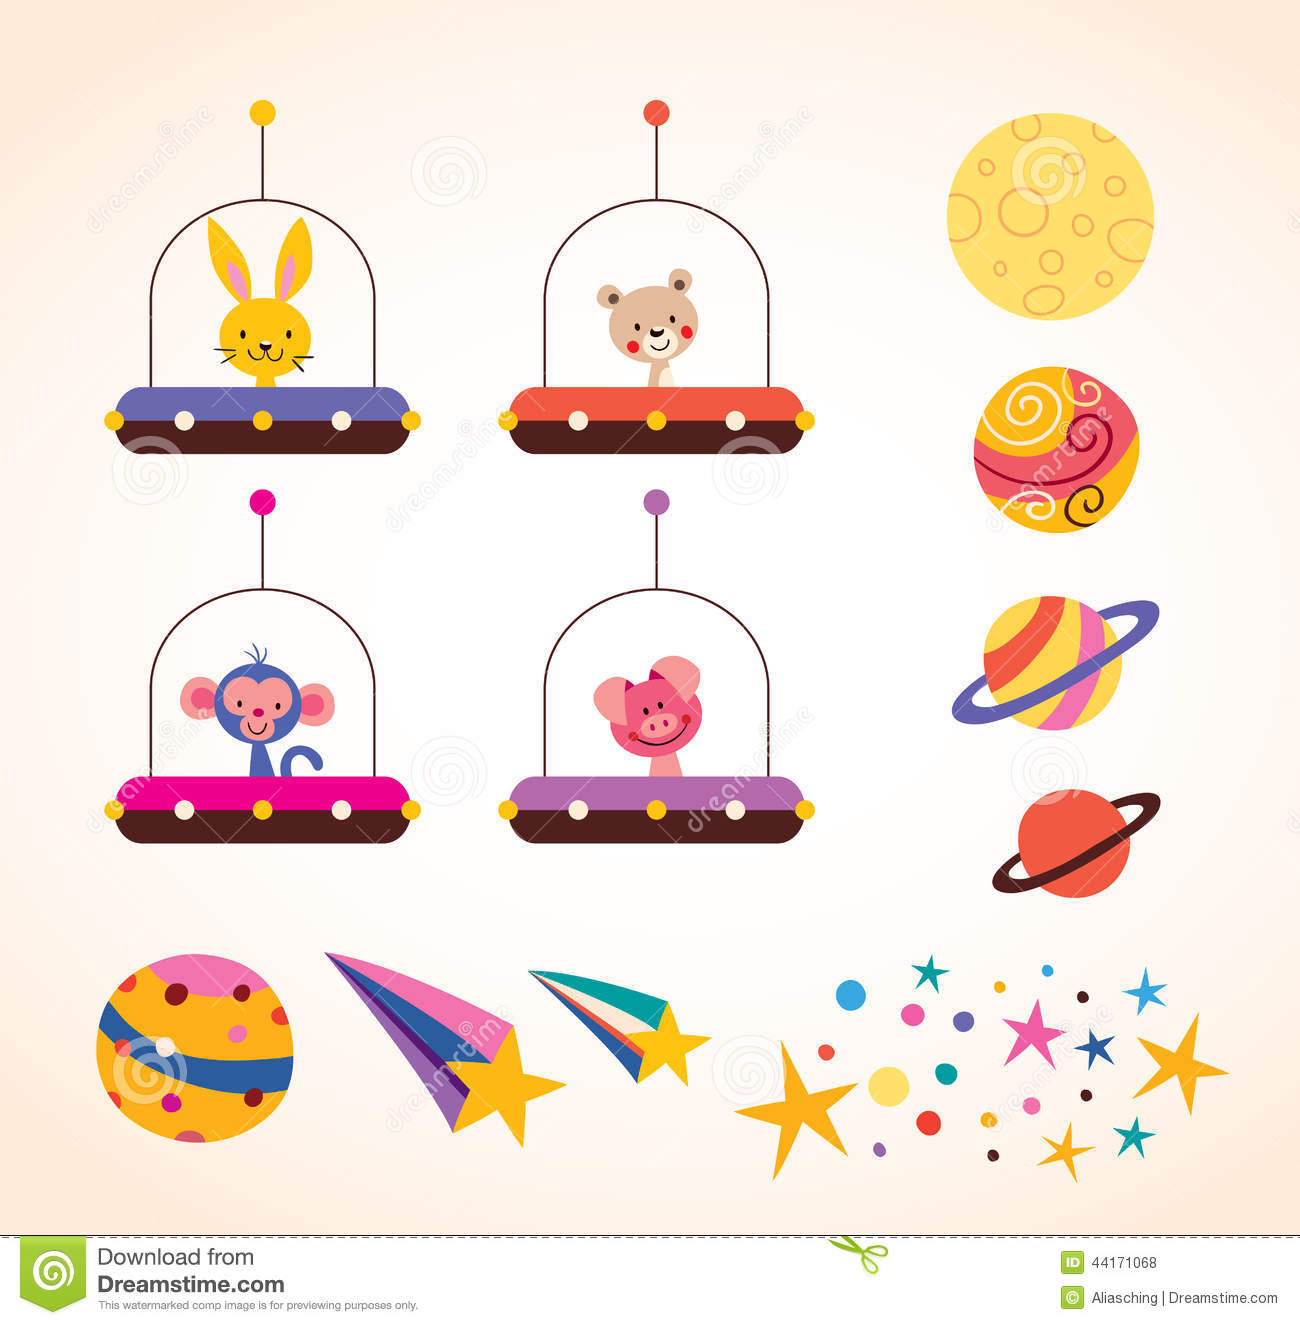 Cute Animals In Space Ships Kids Design Elements Set